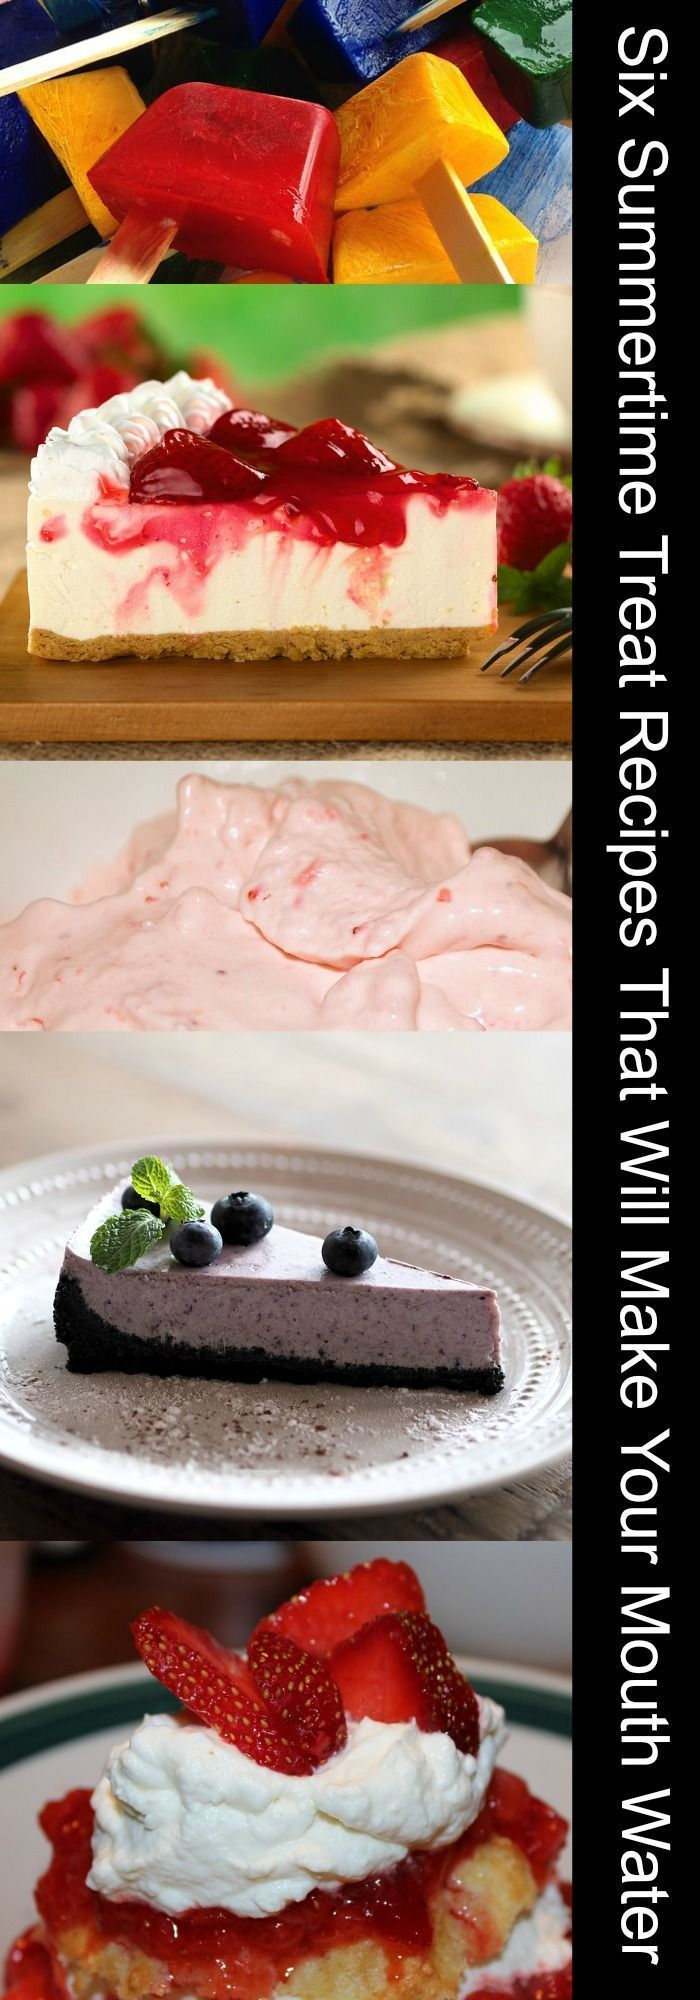 Six Summertime Treat Recipes That Will Make Your Mouth Water: Ice Pops, No Bake Cheesecake, Strawberry Shortcake, Homemade Ice Cream, Fruit Cobbler, Blueberry Cheesecake #summerrecipe #cheescake #icecream #summertime